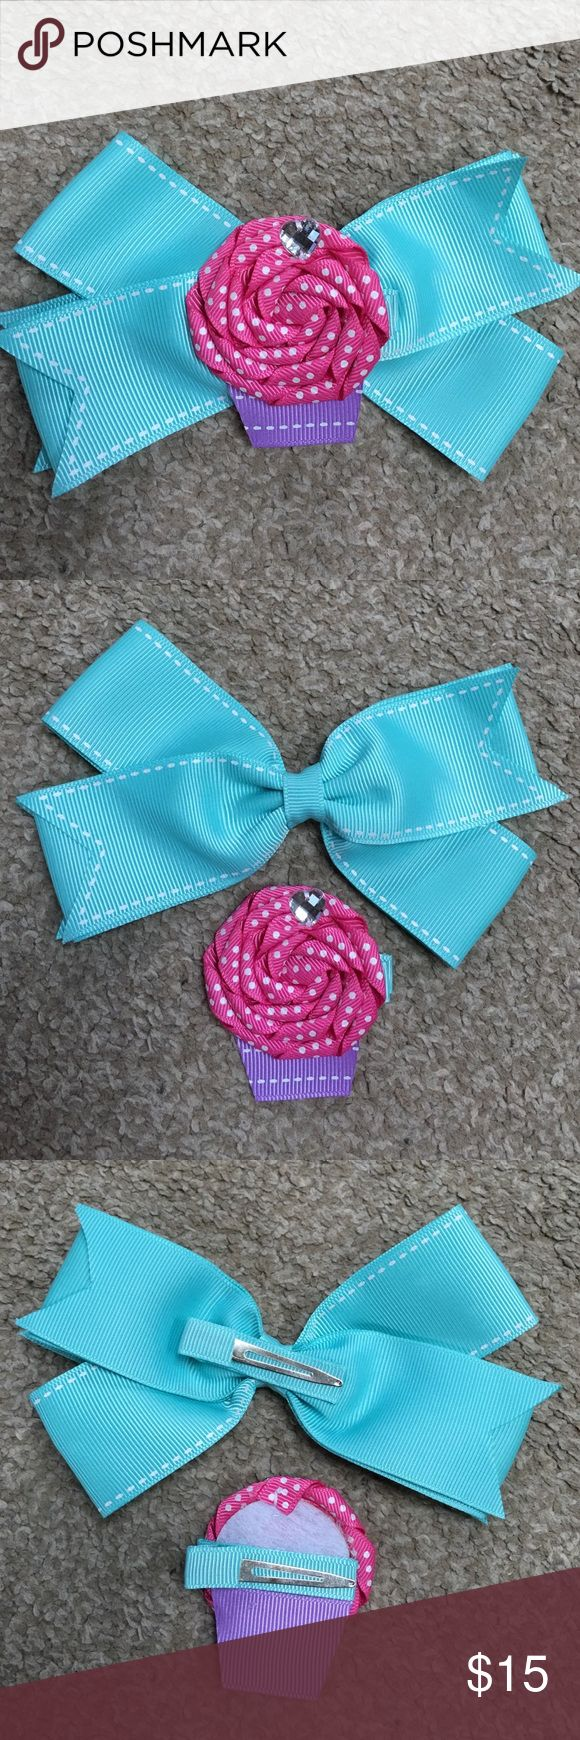 2-1 home made cupcake hair now clips Scrumptious little cupcake atop a little bow two in one homemade hair bows can be worn together or apart!! Accessories Hair Accessories